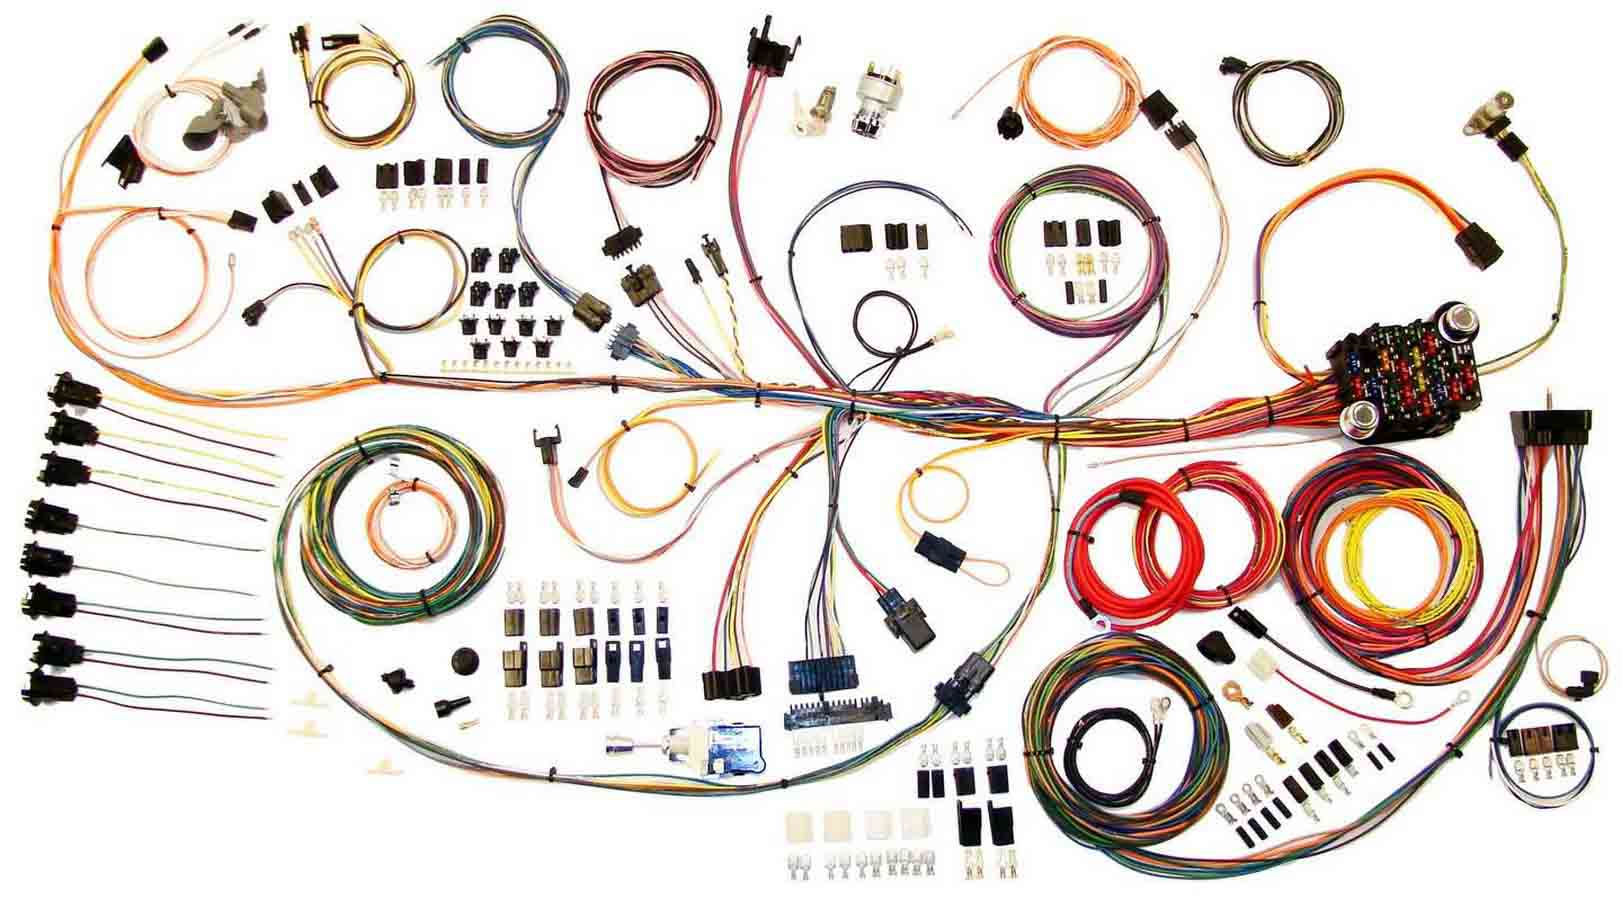 hight resolution of 67 camaro american autowire wiring diagram trusted wiring diagram 65 mustang wiring harness american autowire 65